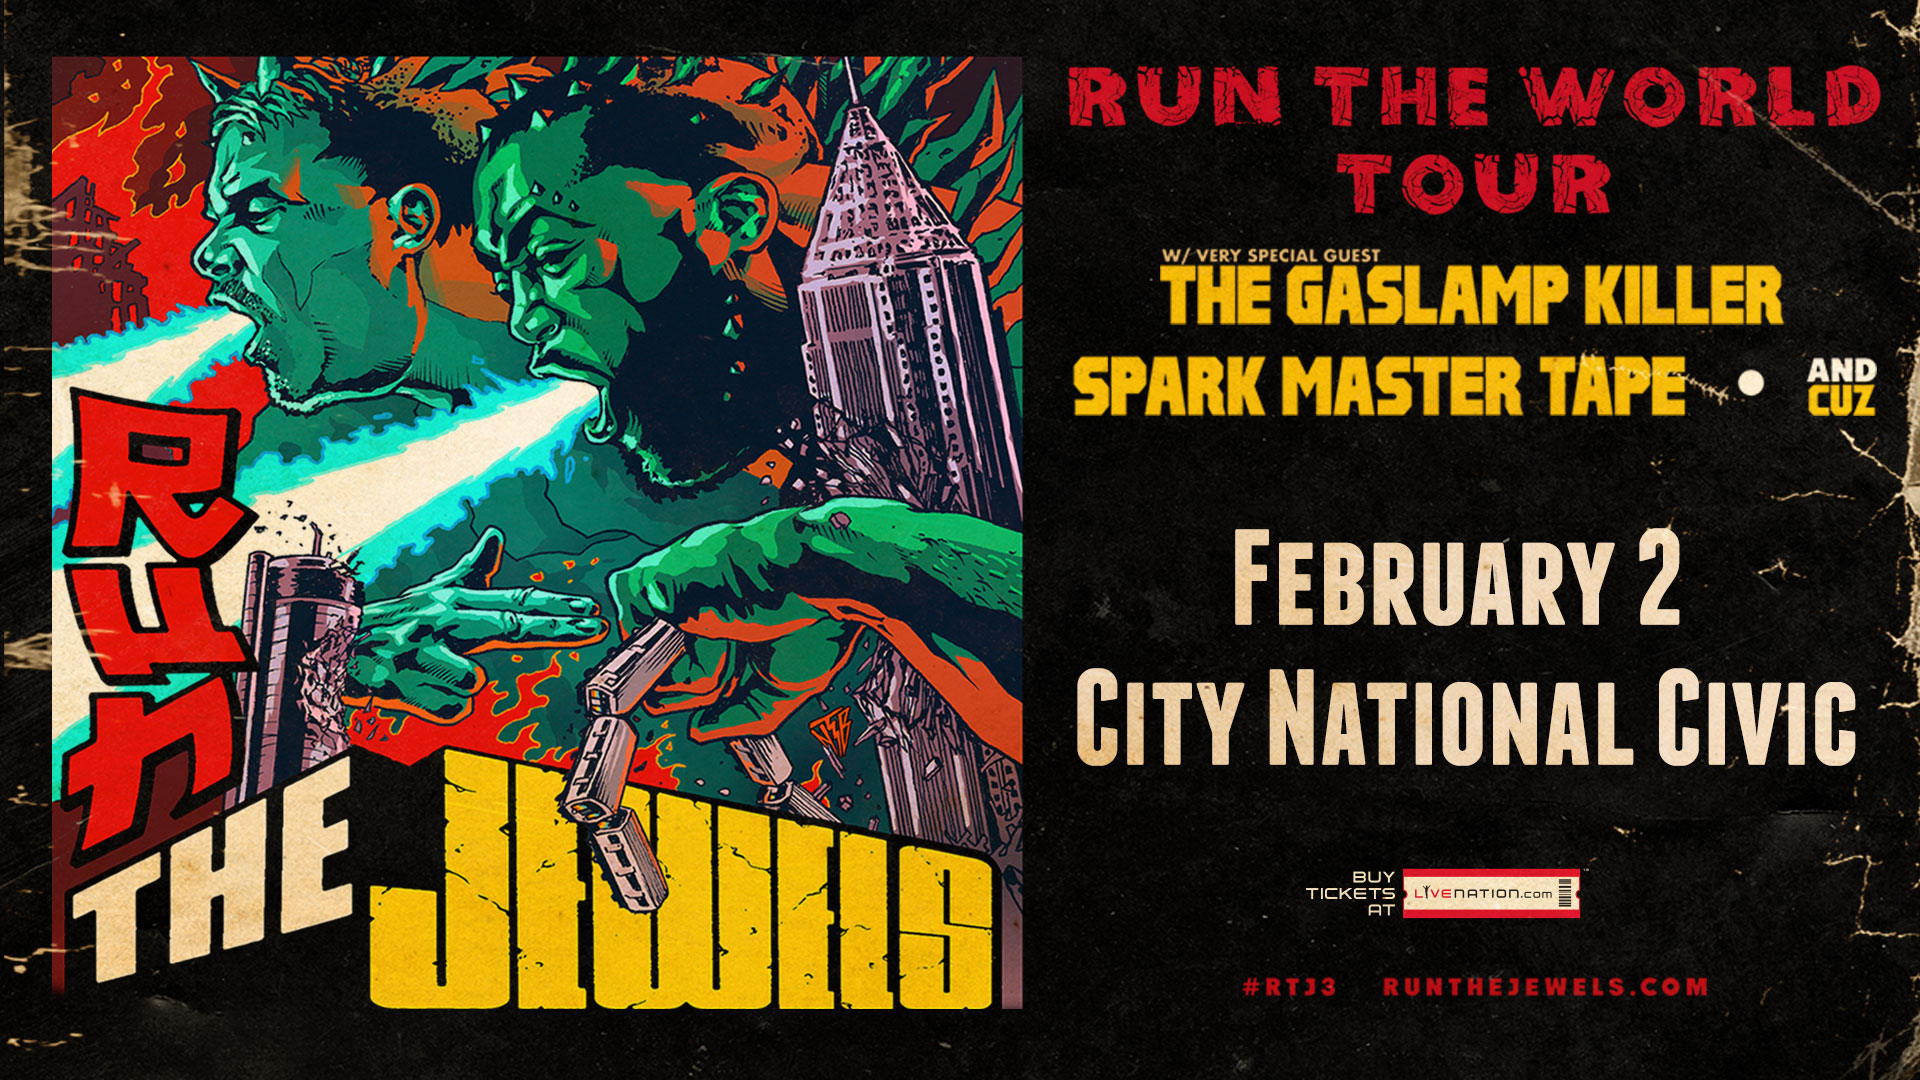 We Wanna Send You To The Run The Jewels Run The World Tour